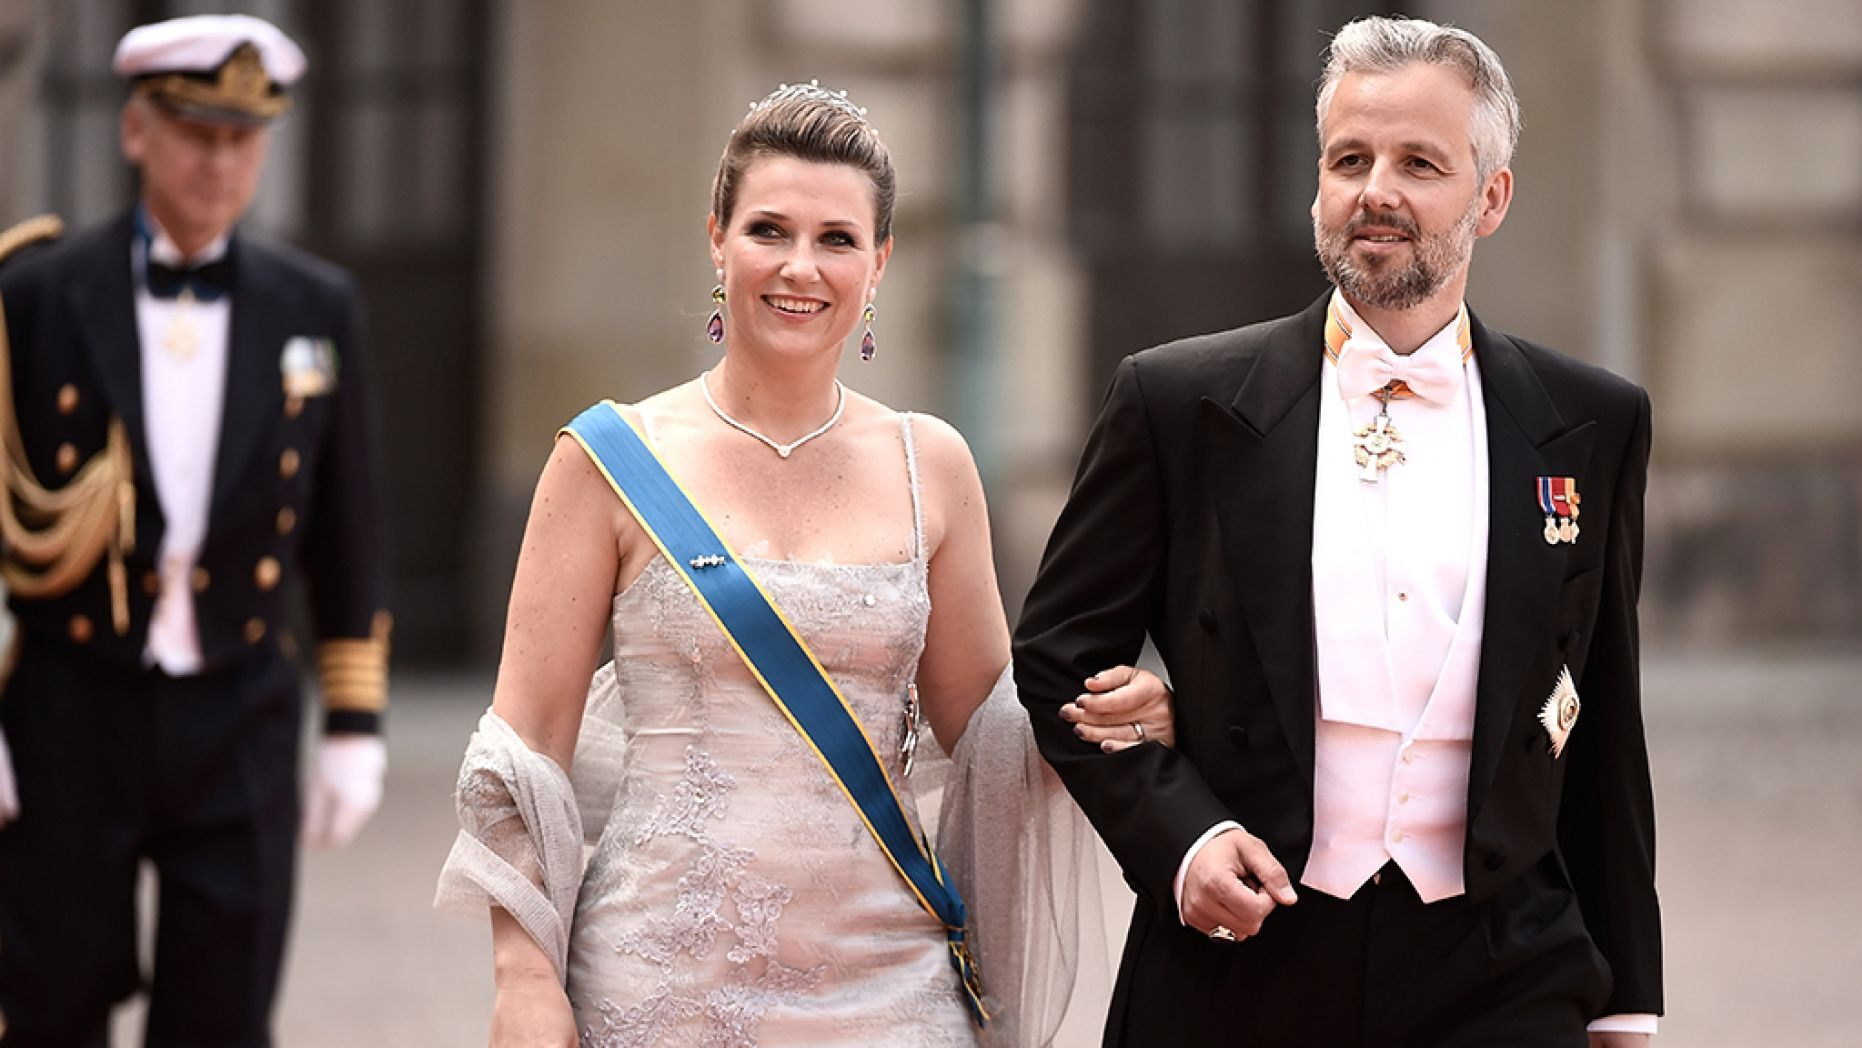 Princess Martha Louise of Norway and her husband Ari Behn attend the royal wedding of Prince Carl Philip of Sweden and Sofia Hellqvist at The Royal Palace on June 13, 2015